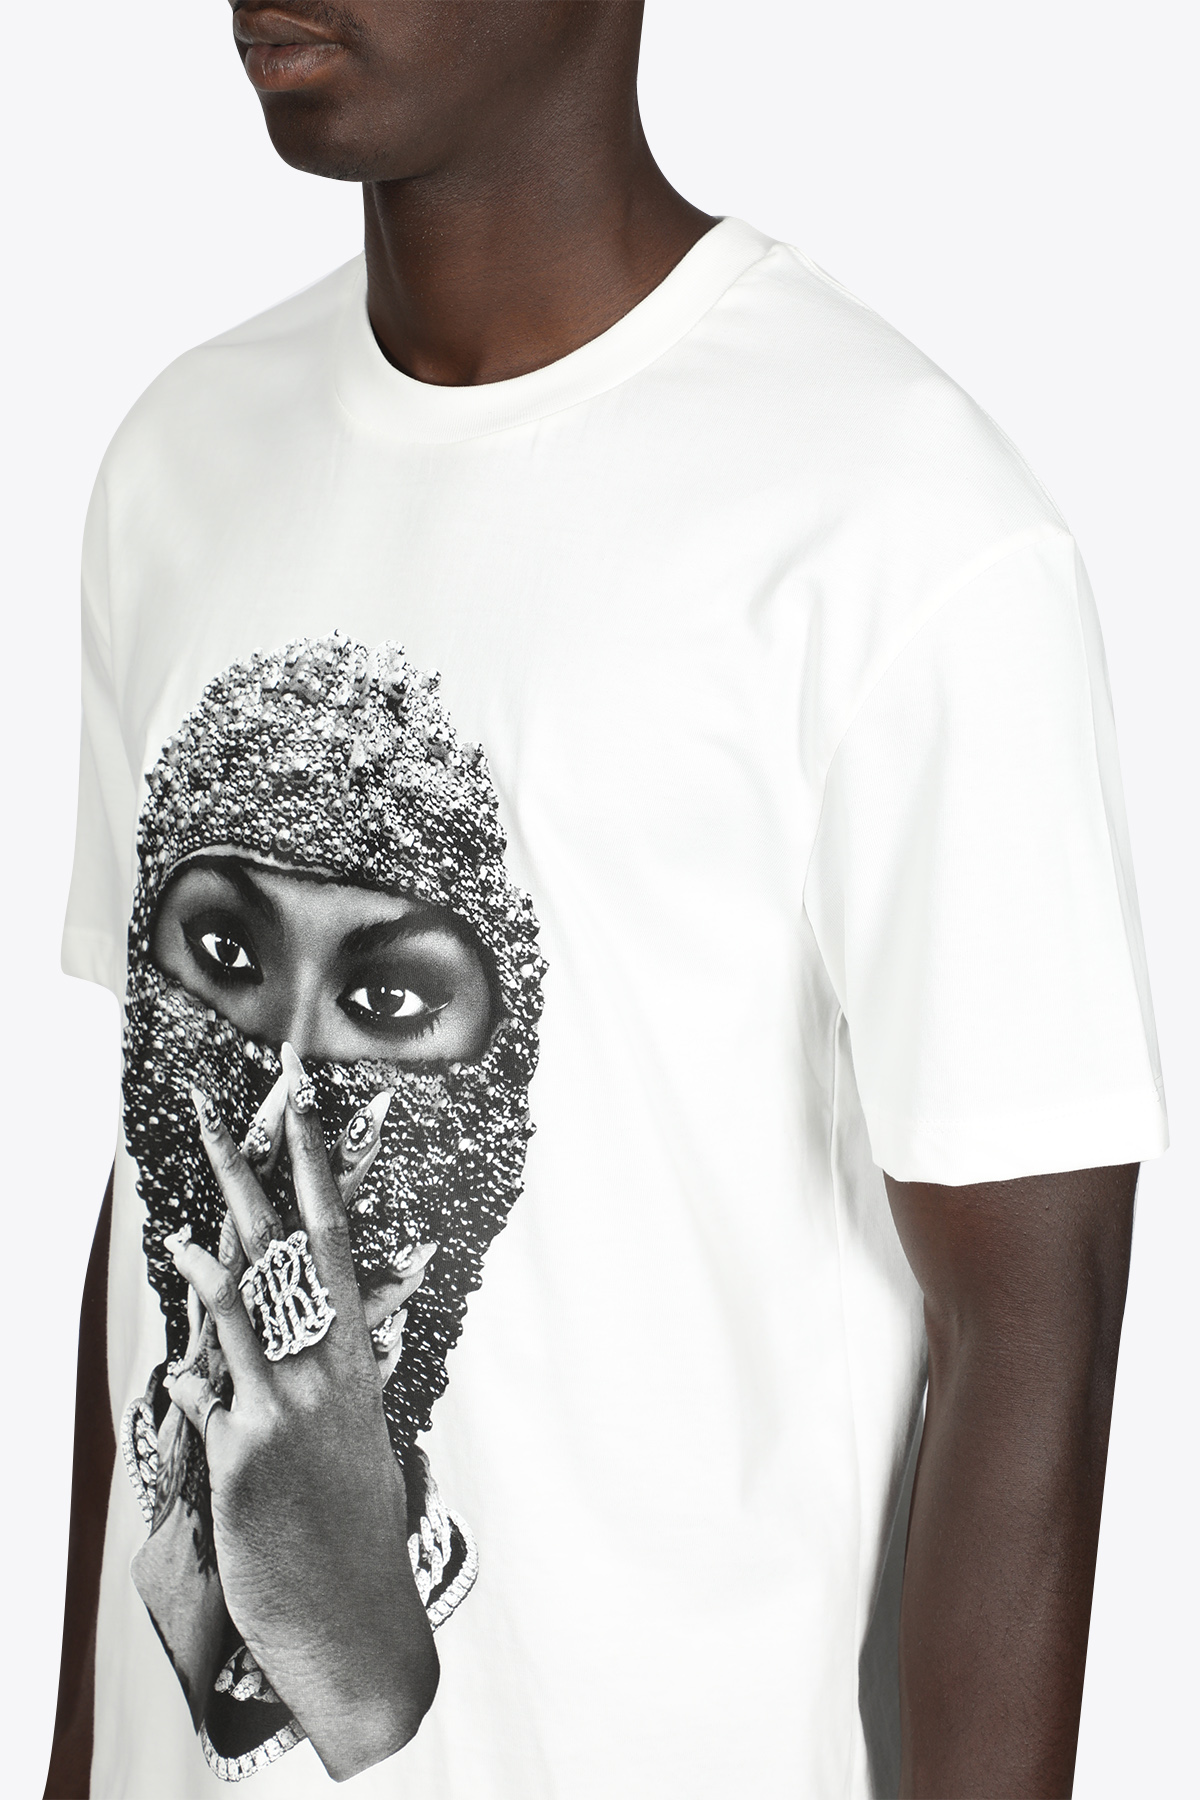 T-SHIRT BIANCA IN COTONE CON STAMPA DONNA IN MASCHRA DI PERLE IH NOM UH NIT | 8 | NUW21254 T-SHIRT BLACK PEARL WOMAN MASK081